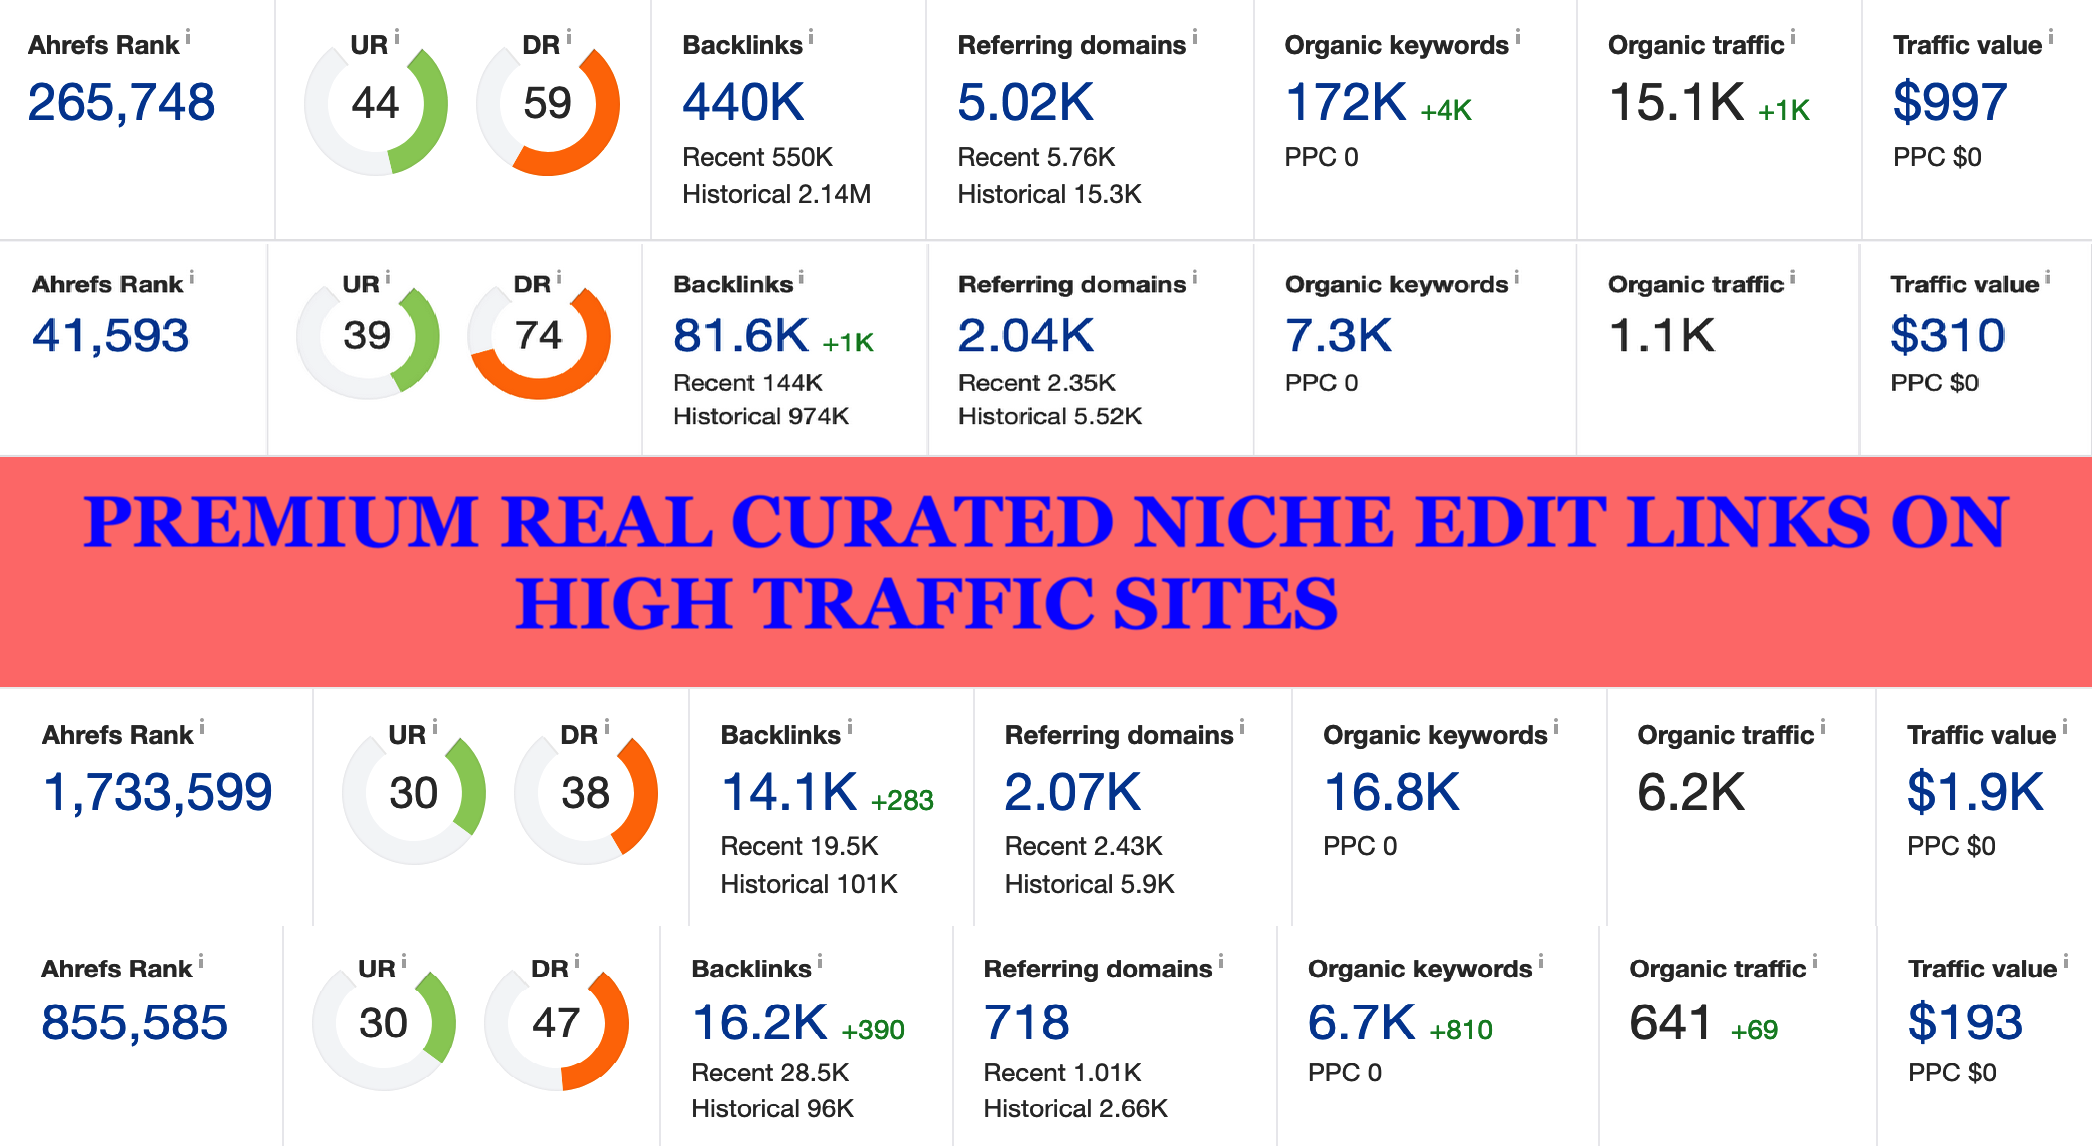 Premium real curated niche edits links on organic high traffic sites,  more than 400 RDs